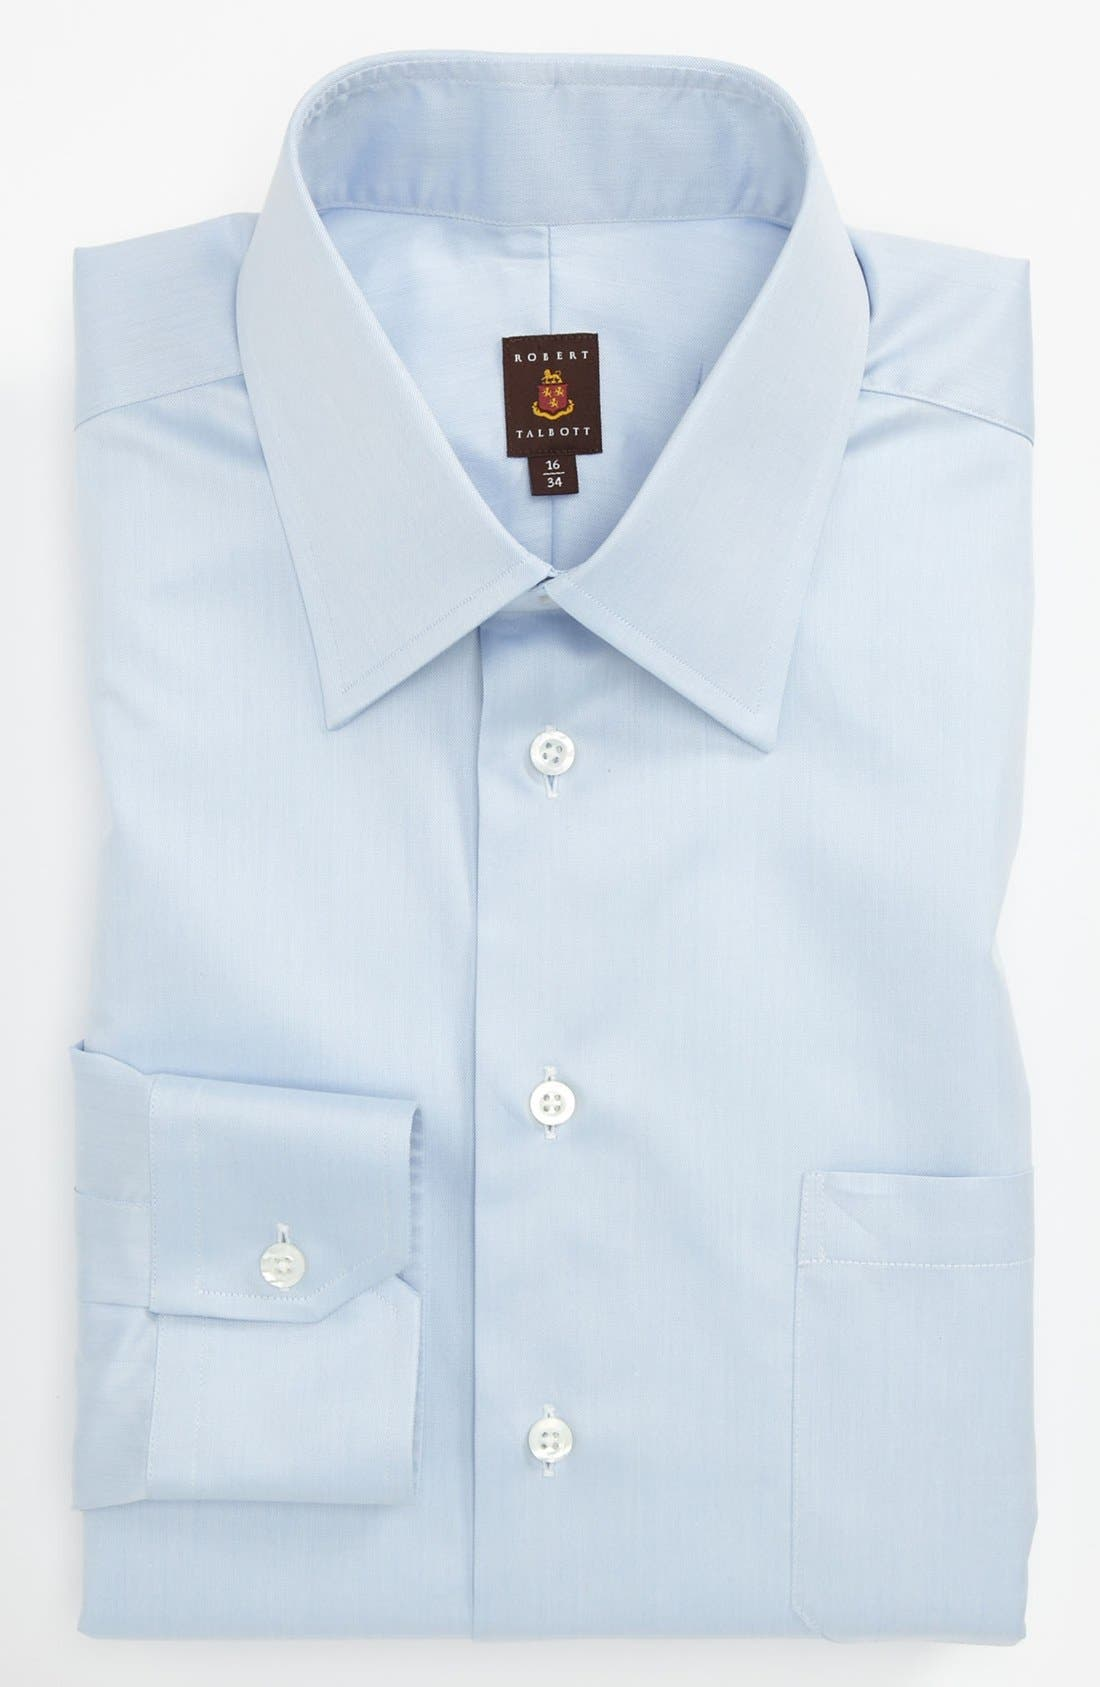 Alternate Image 1 Selected - Robert Talbott Classic Fit Dress Shirt